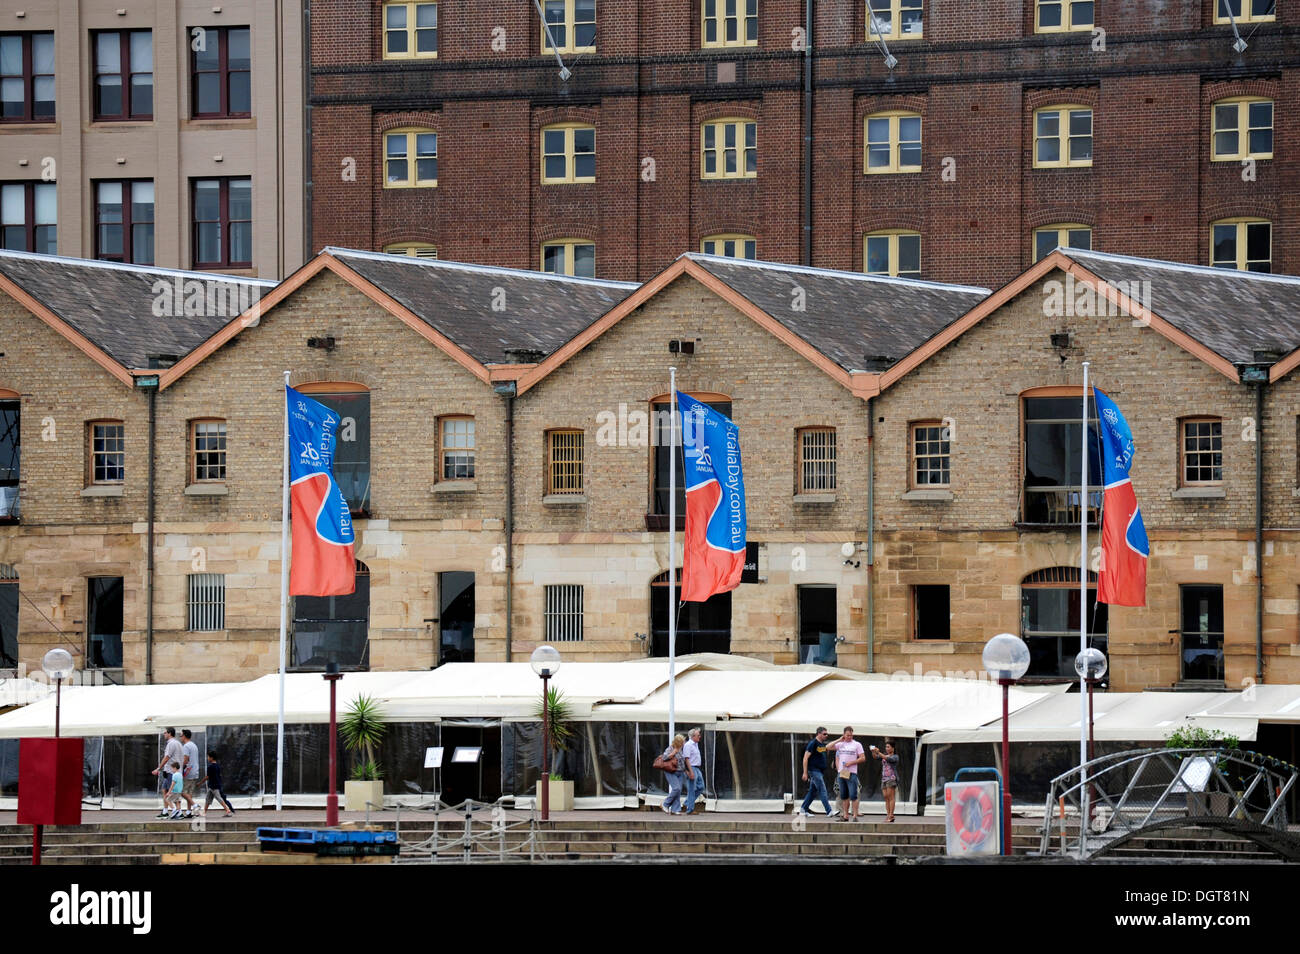 Circular Quay Wharves, waterfront at Campbell's Storehouse, The Rocks, Sydney Harbour, Sydney, New South Wales, NSW, Australia - Stock Image